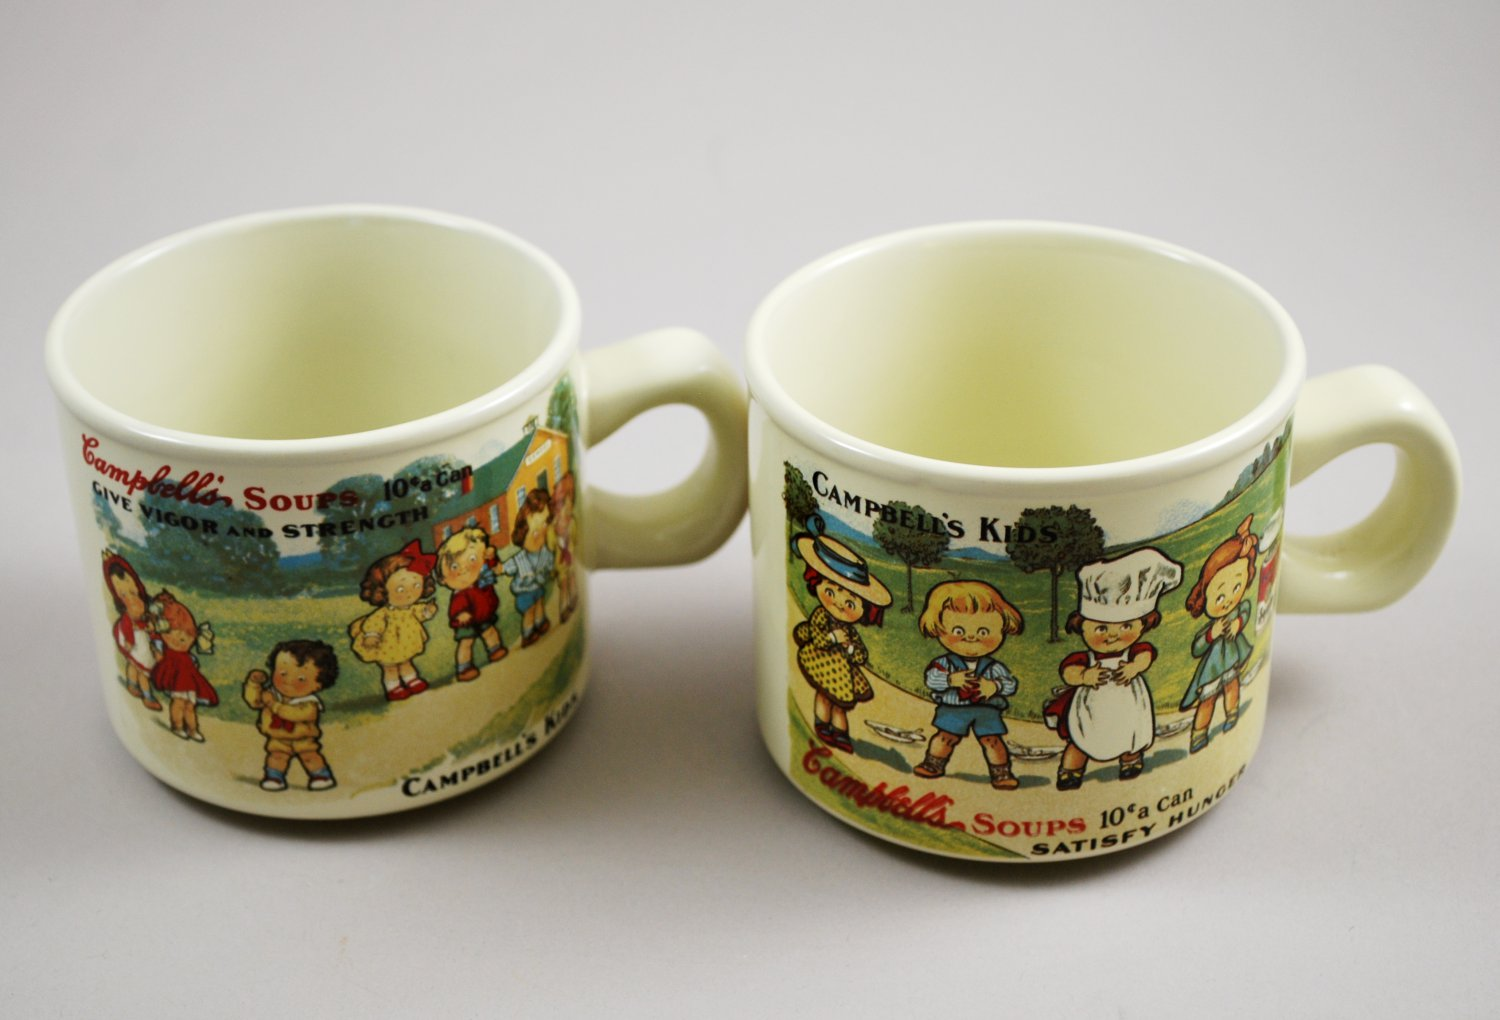 1994 Campbell Kids Soup Westwood Replica 1910 Souvenir Postcard Ceramic Mugs